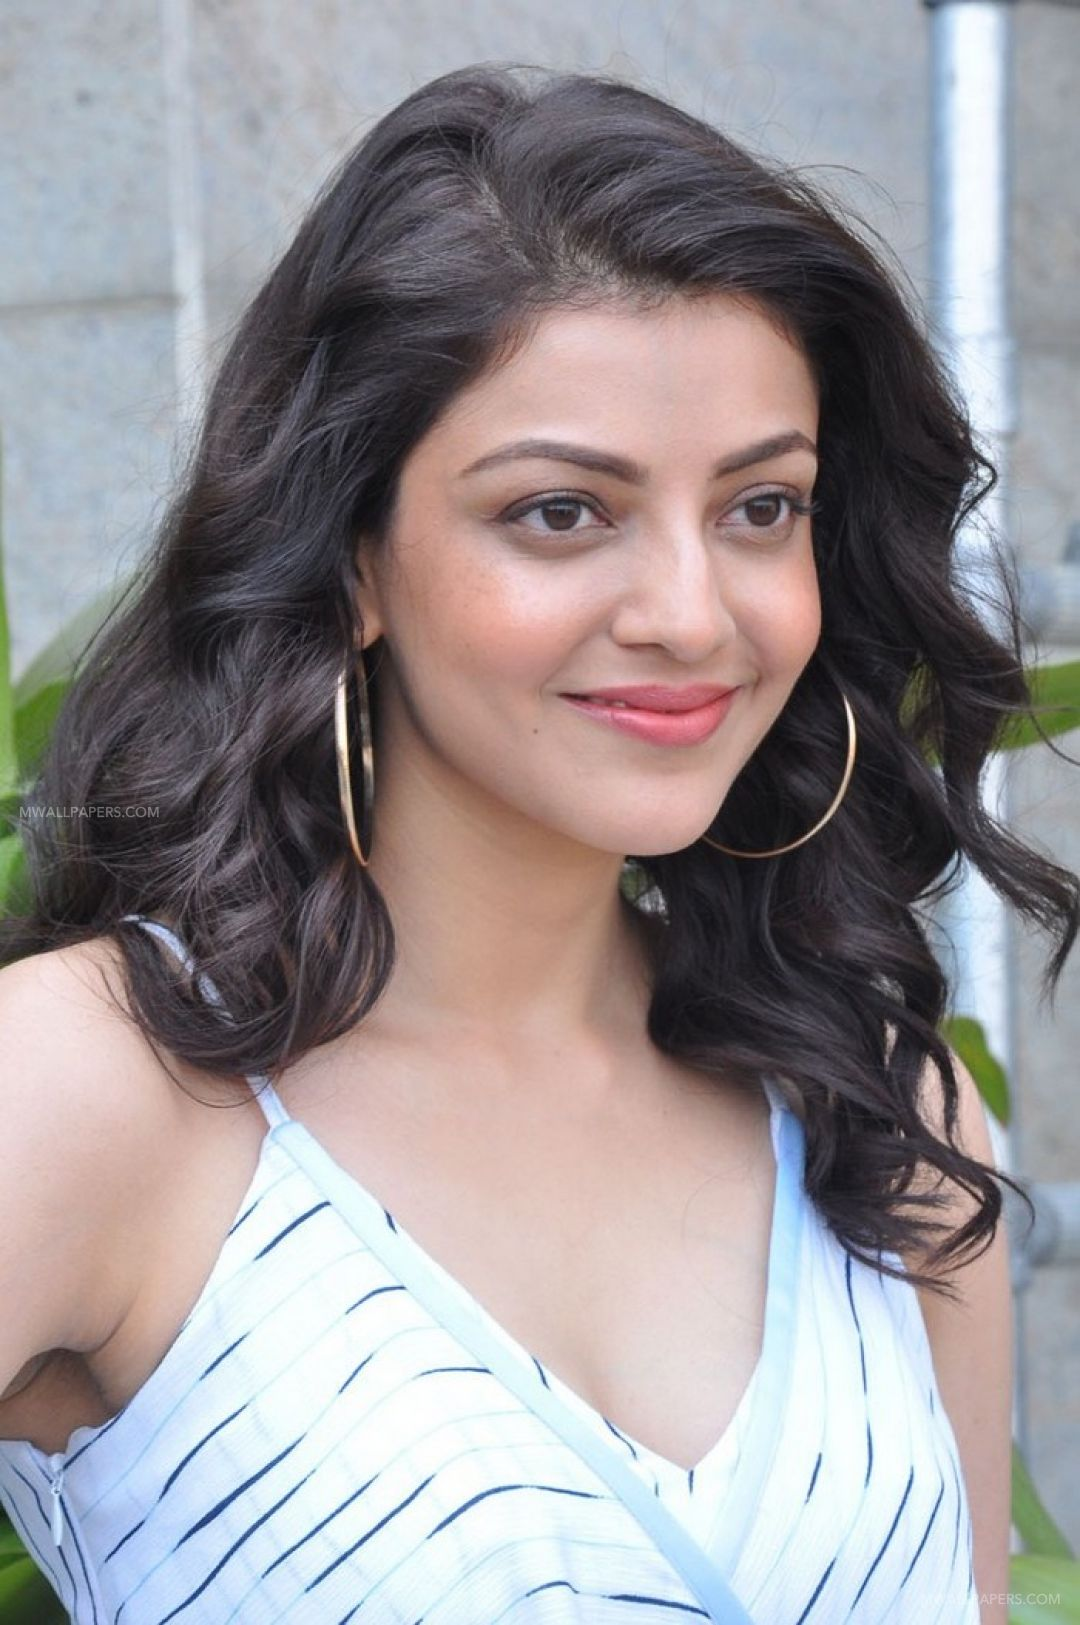 Kajal Agarwal HD Wallpapers (Desktop Background / Android / iPhone) (1080p, 4k) (35941) - Kajal Agarwal